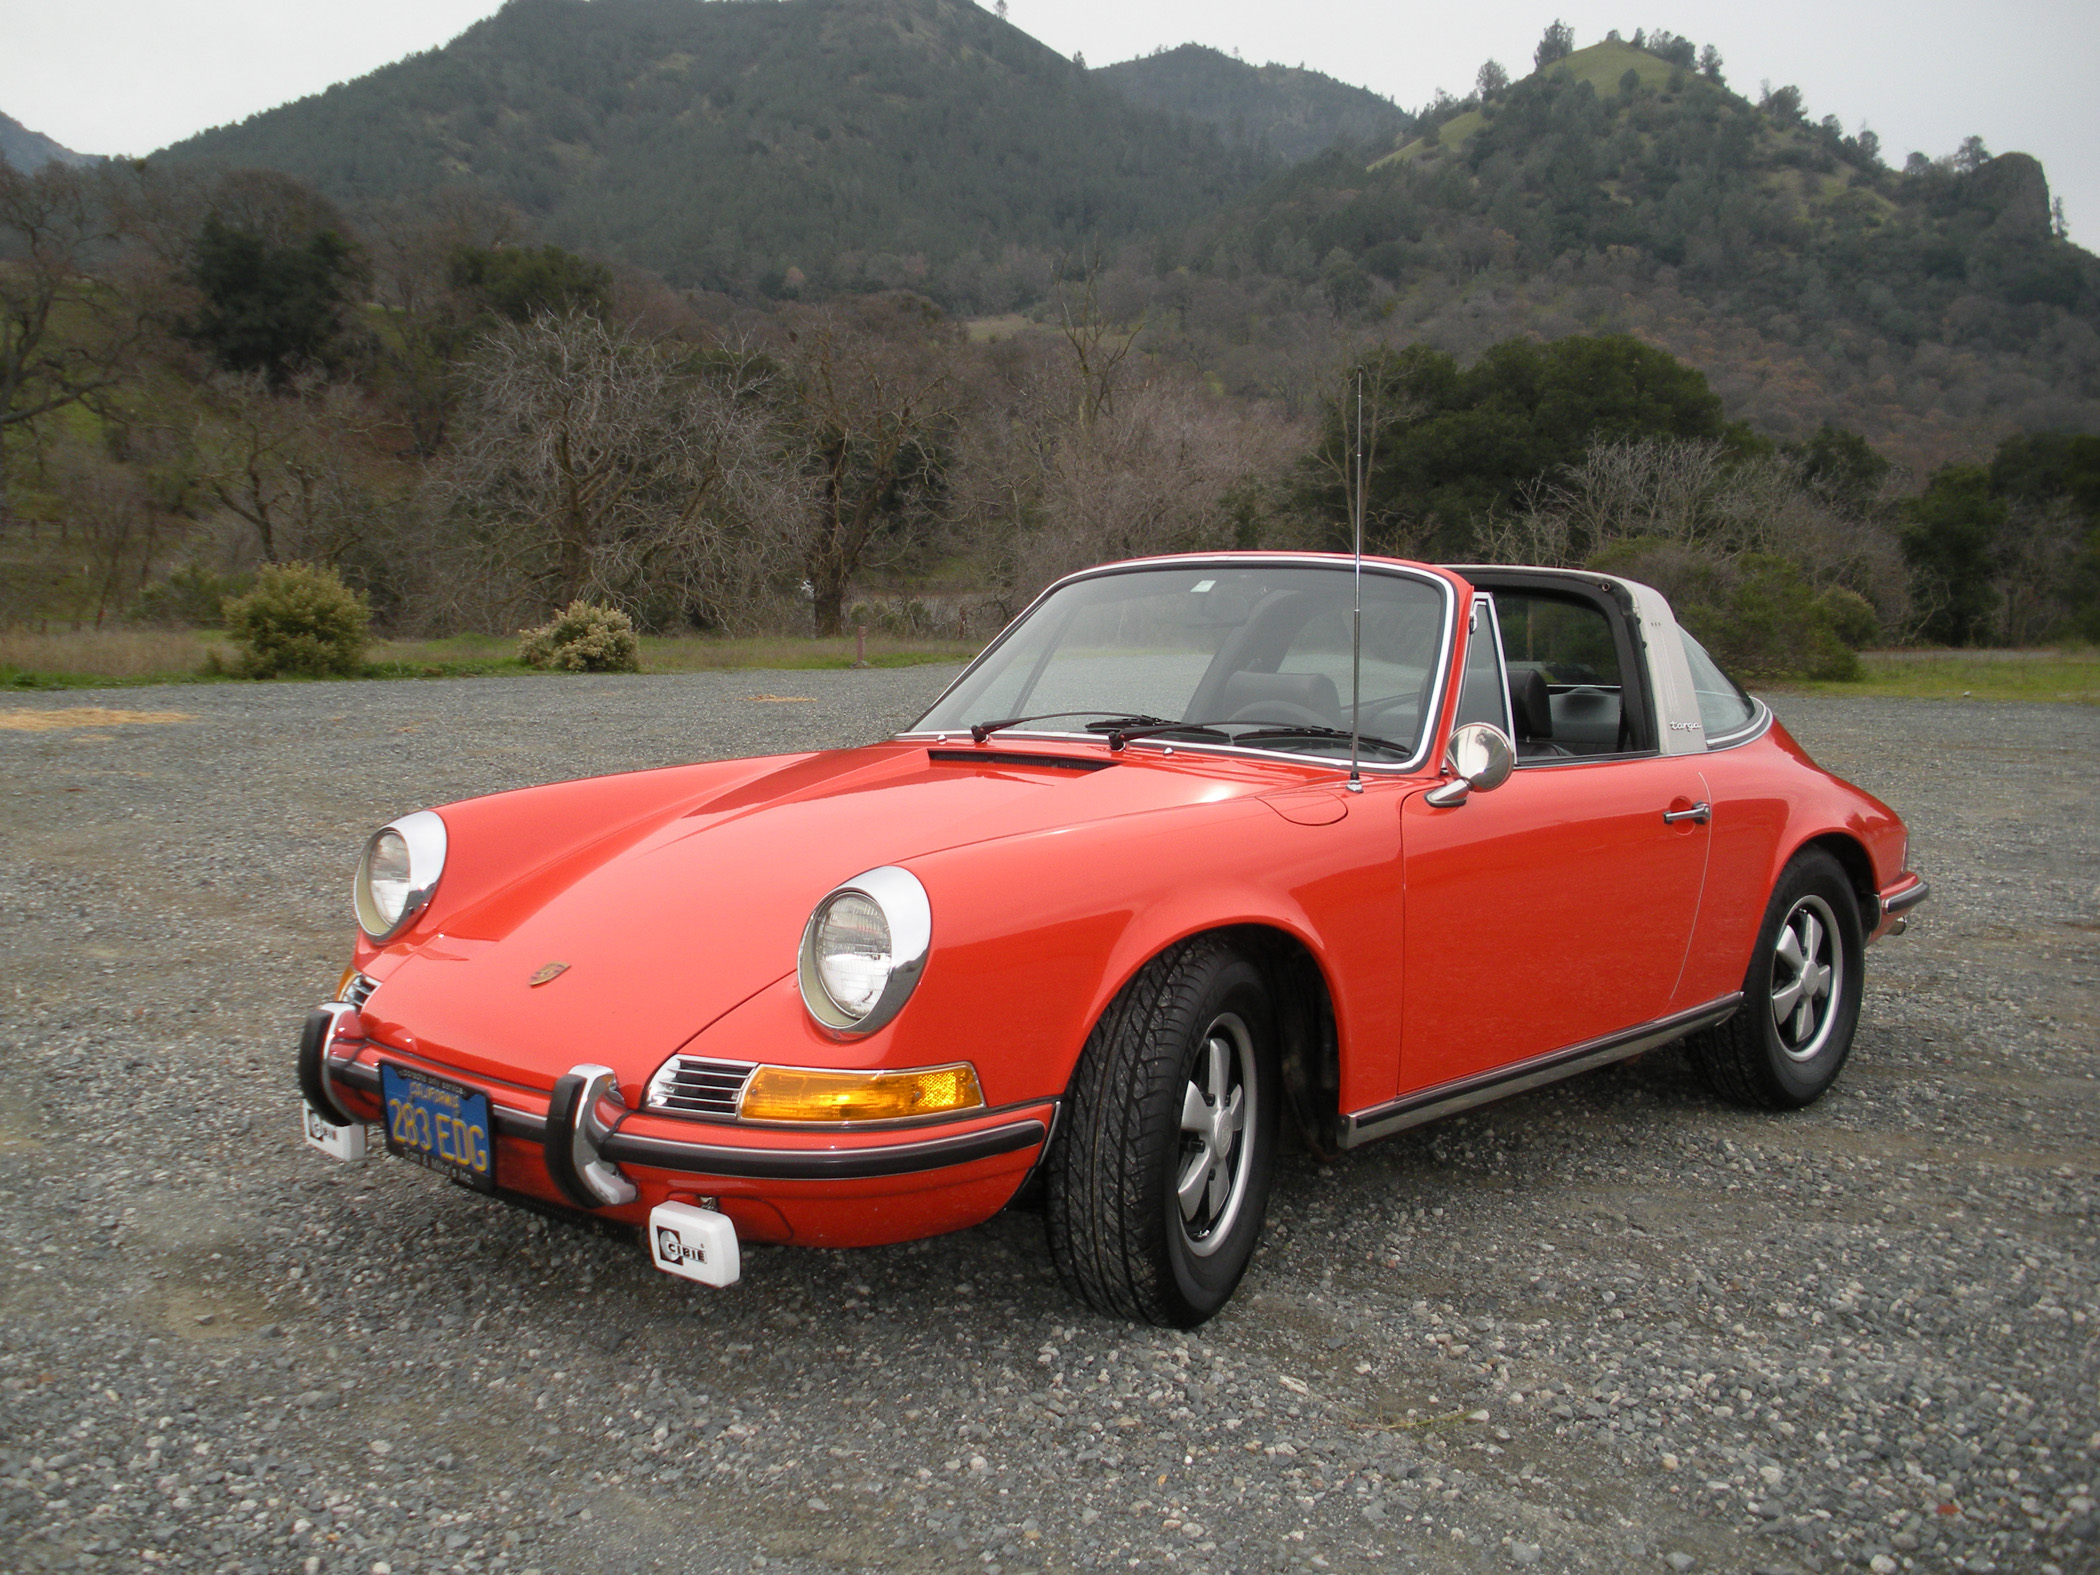 1971 Porsche 911e Targa Picked Up In Europe Shipped To U